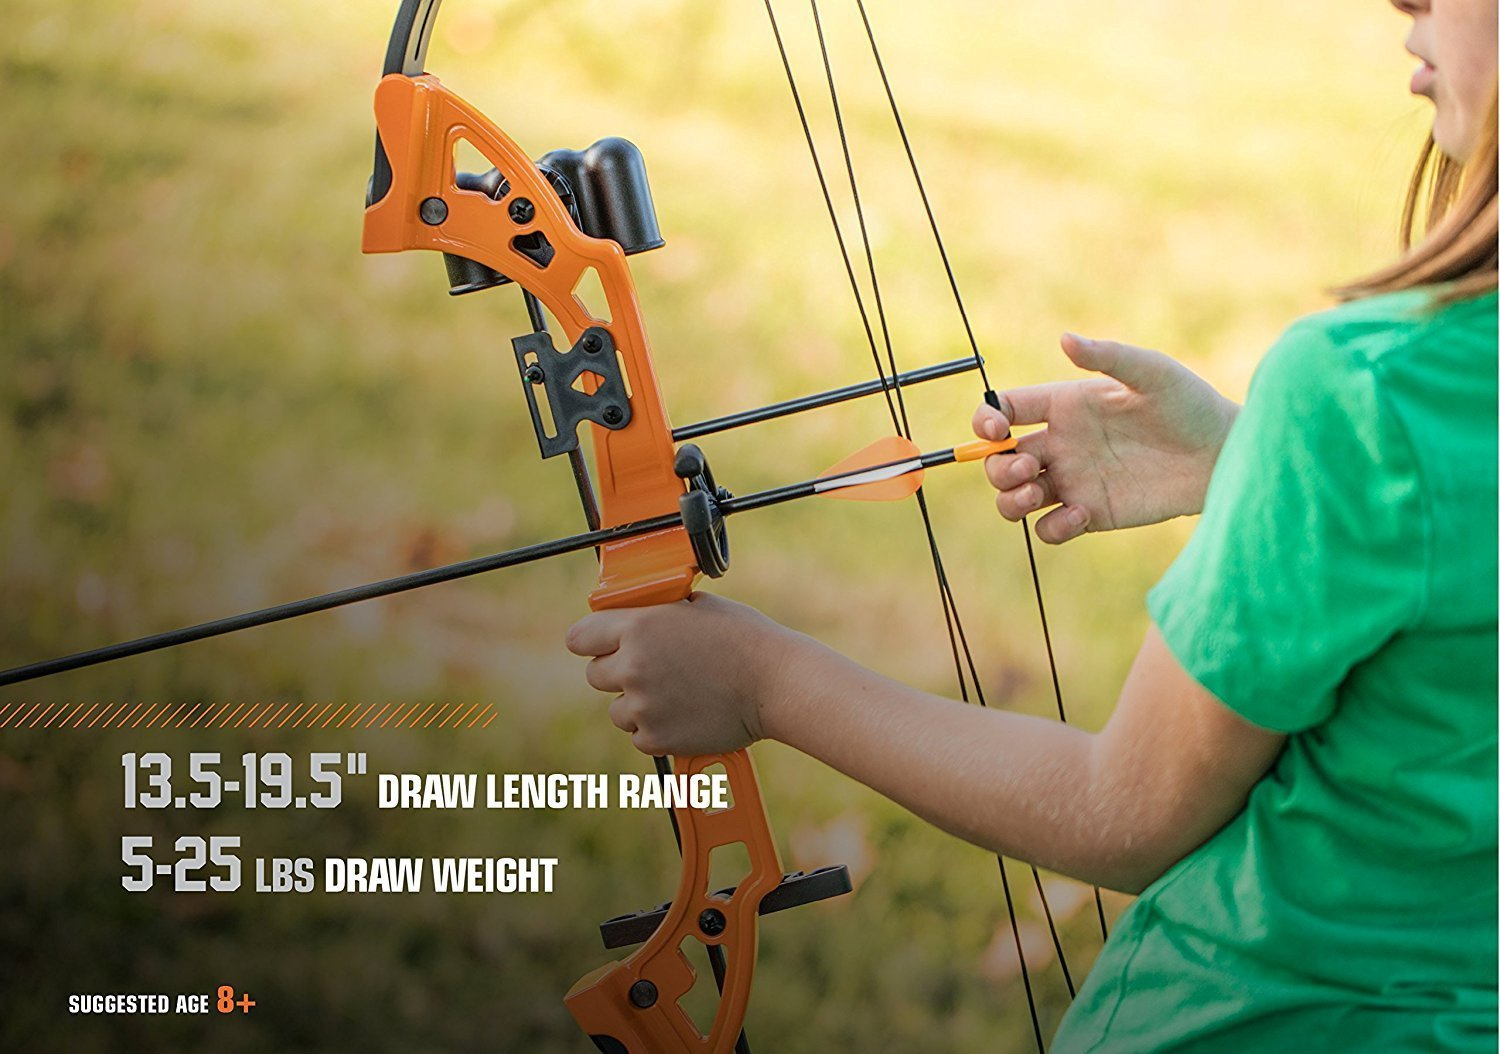 By-Ear Archery Compound Bow, Brave Youth Set Girls Boys Compound Bow Kids, Black by By-Ear Archery (Image #4)